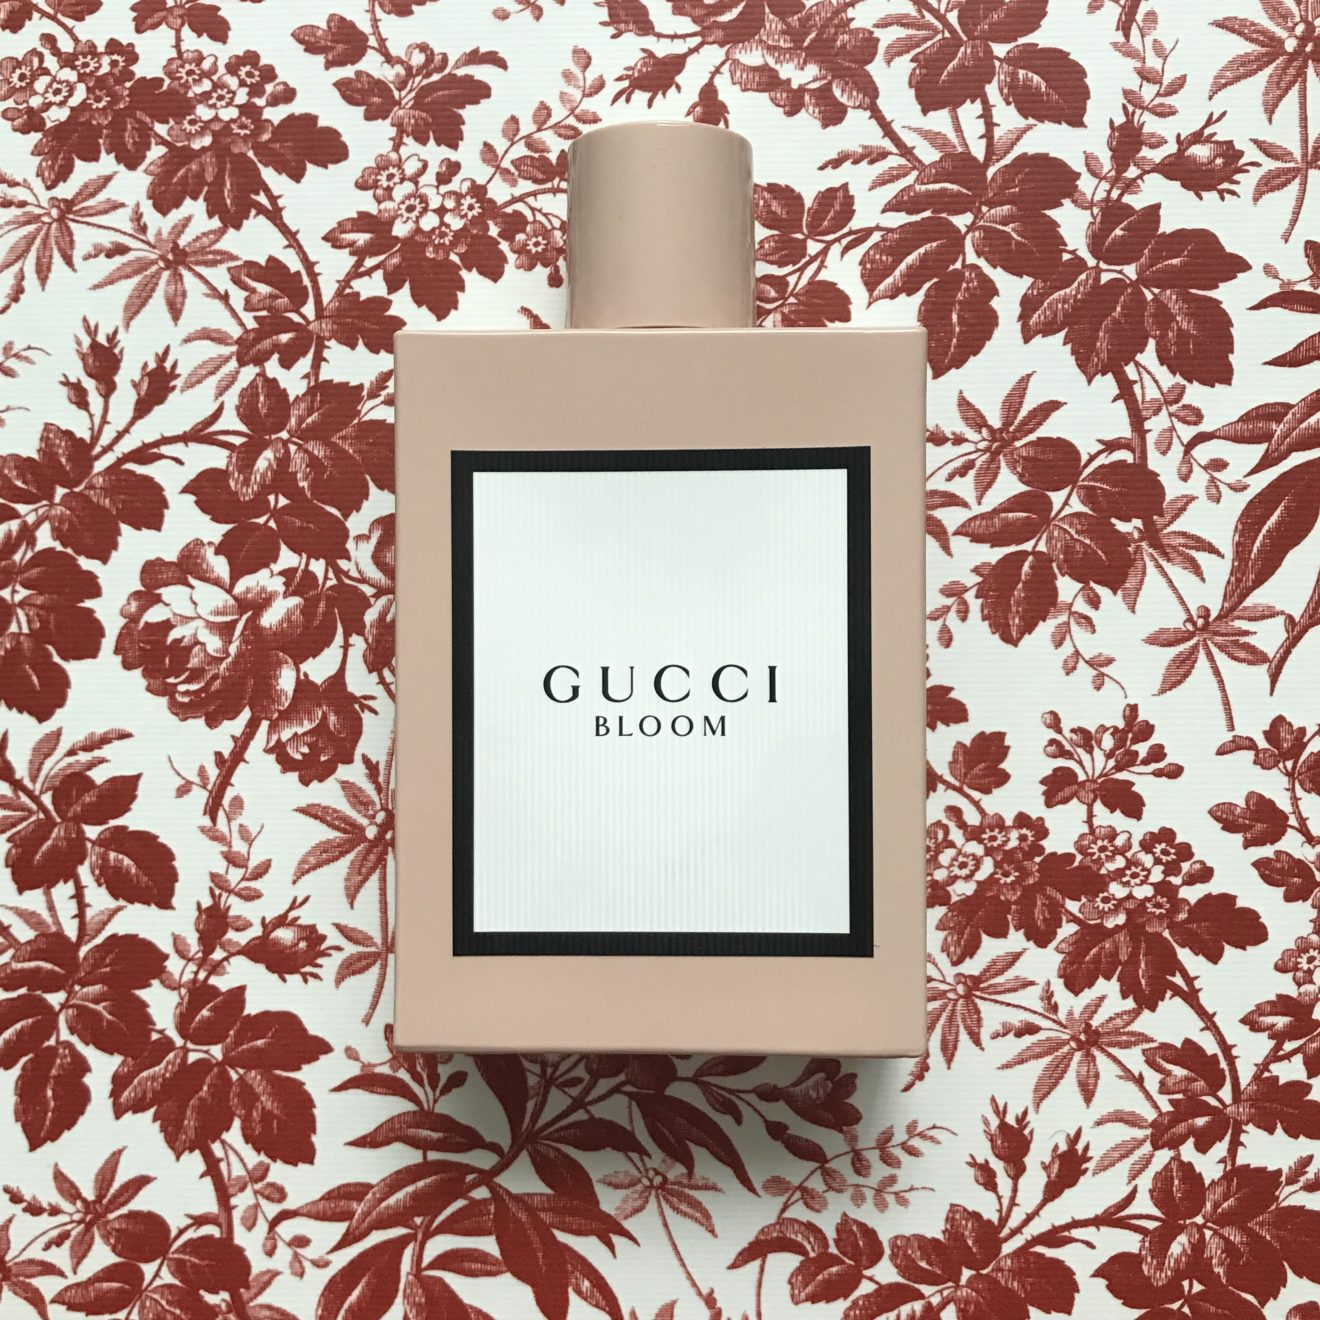 Gucci bloom smells like skin kissed by flowers daly beauty or would it deliver pale pink flower petals and smell as gentle as the beautiful campaign promised mightylinksfo